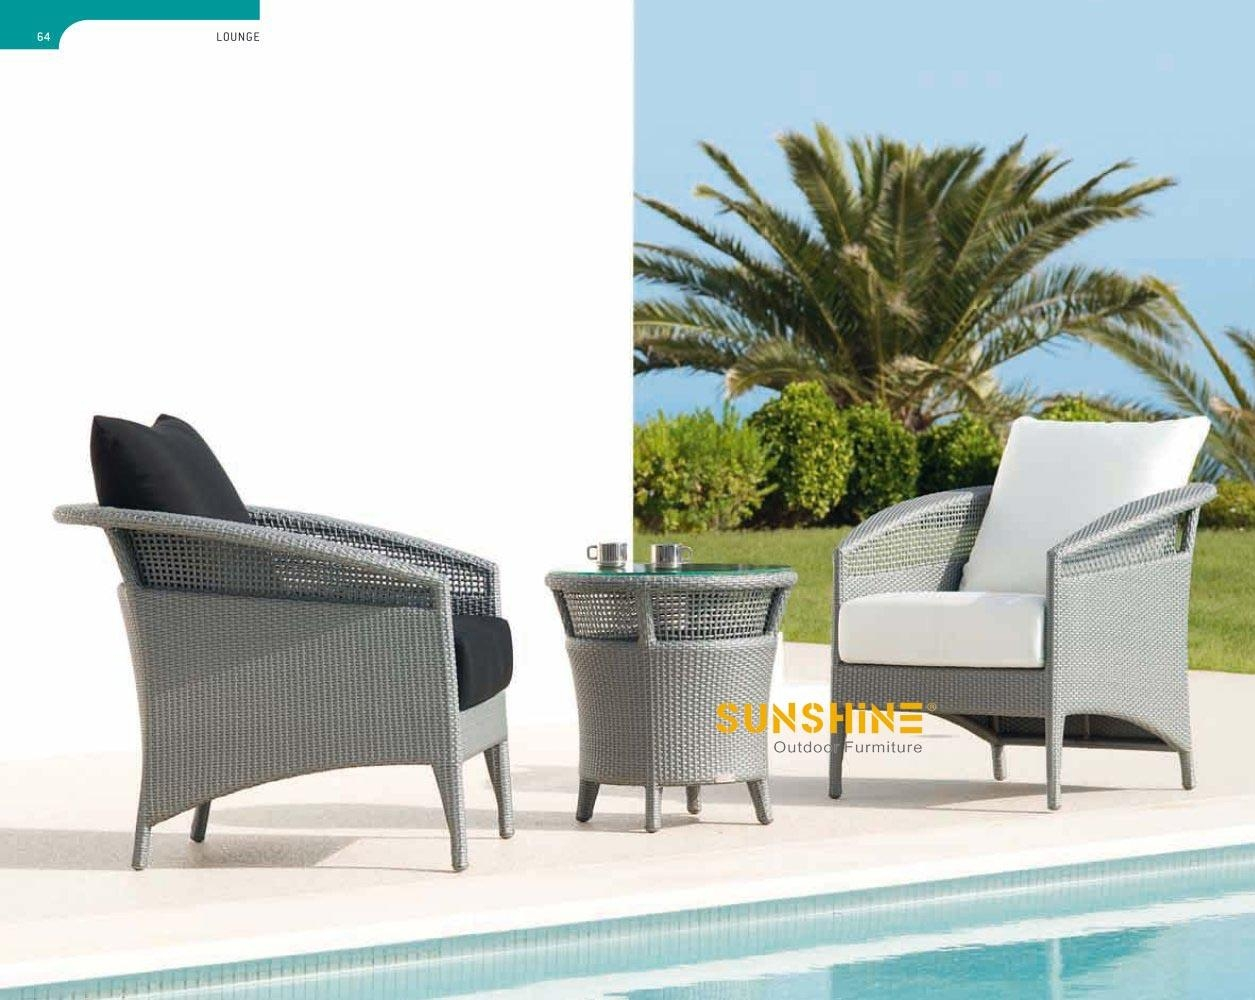 Round Rattan Dining Sets – Outdoor Furniture|Modern Rattan Inside Modern Rattan Sofas (Image 18 of 23)